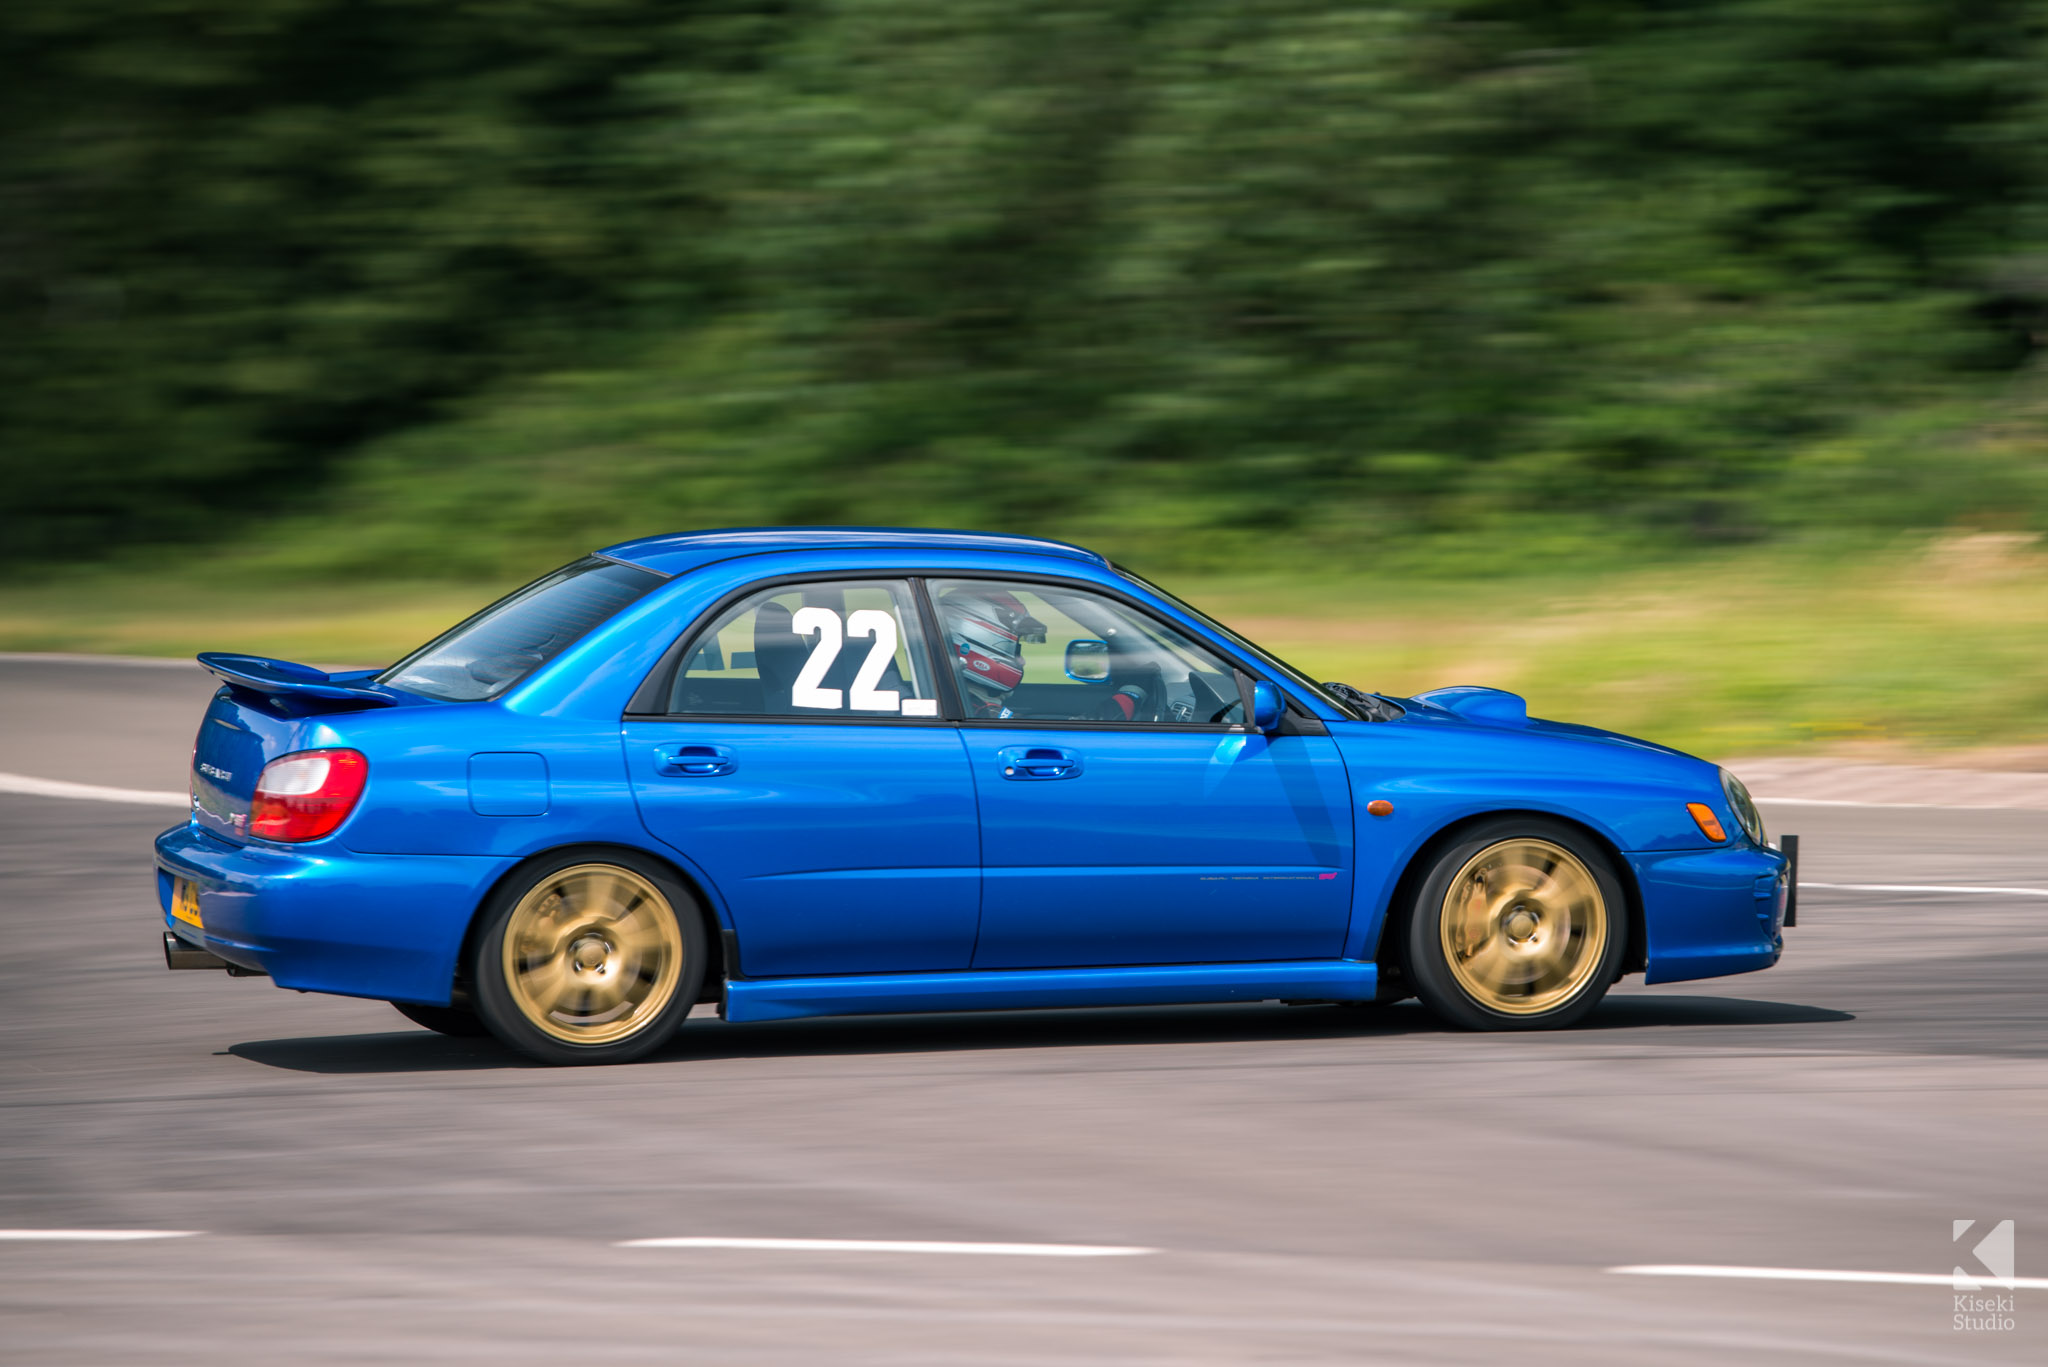 Subaru Impreza STI GDA Curborough Sprint Course